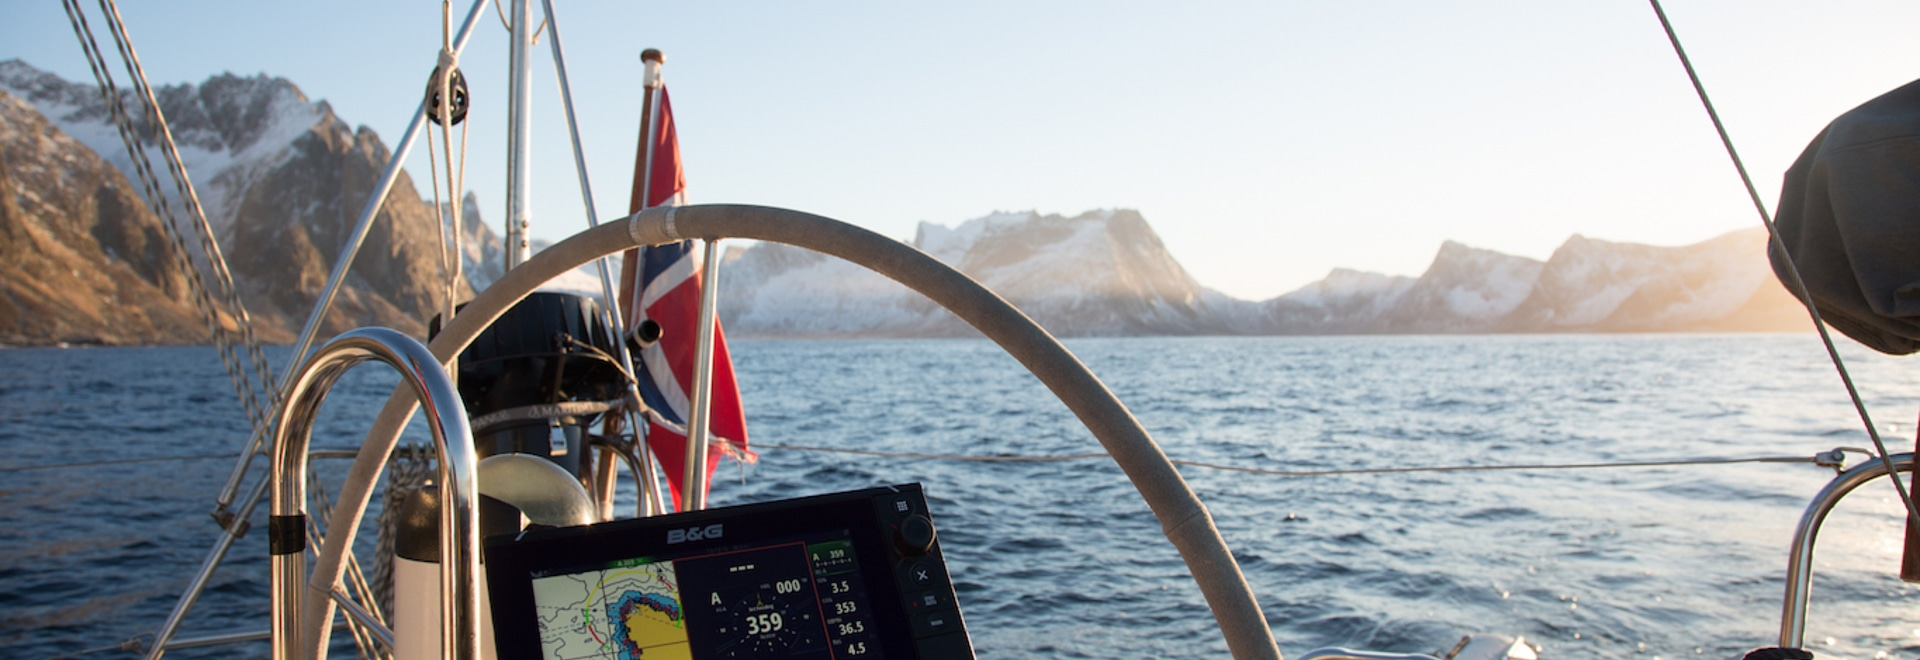 The Arctic Whale Project will conduct an Arctic round trip aided by B&G